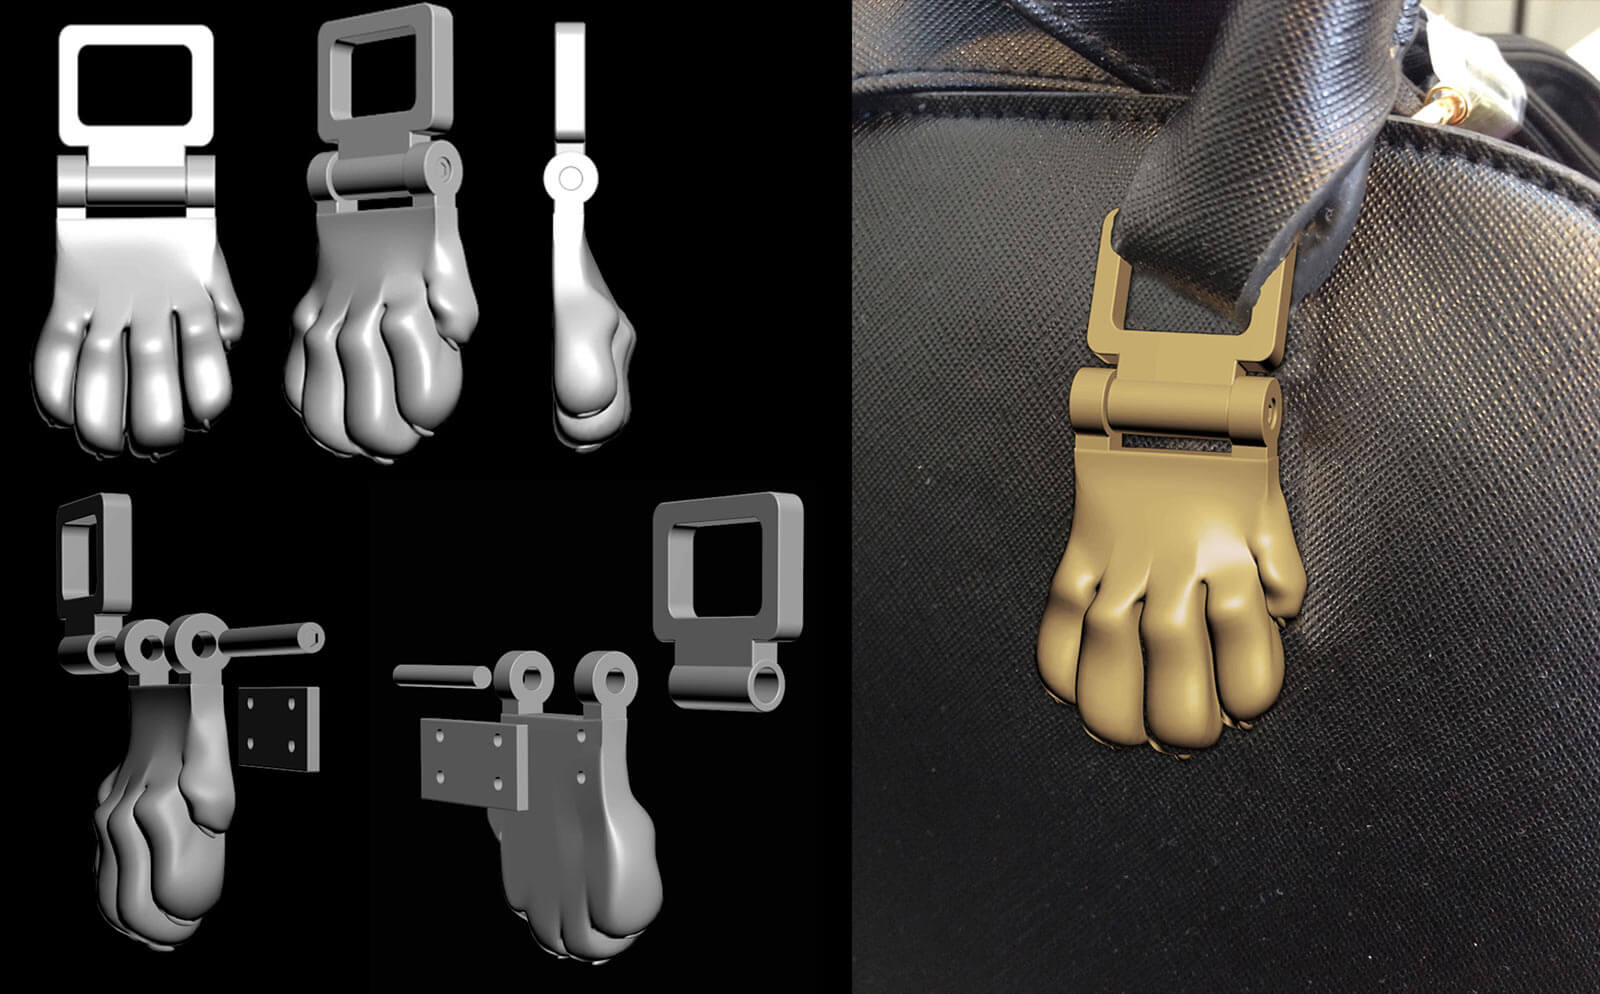 3D  model of lion paw for the hand bag, 3d printing, London, UK.